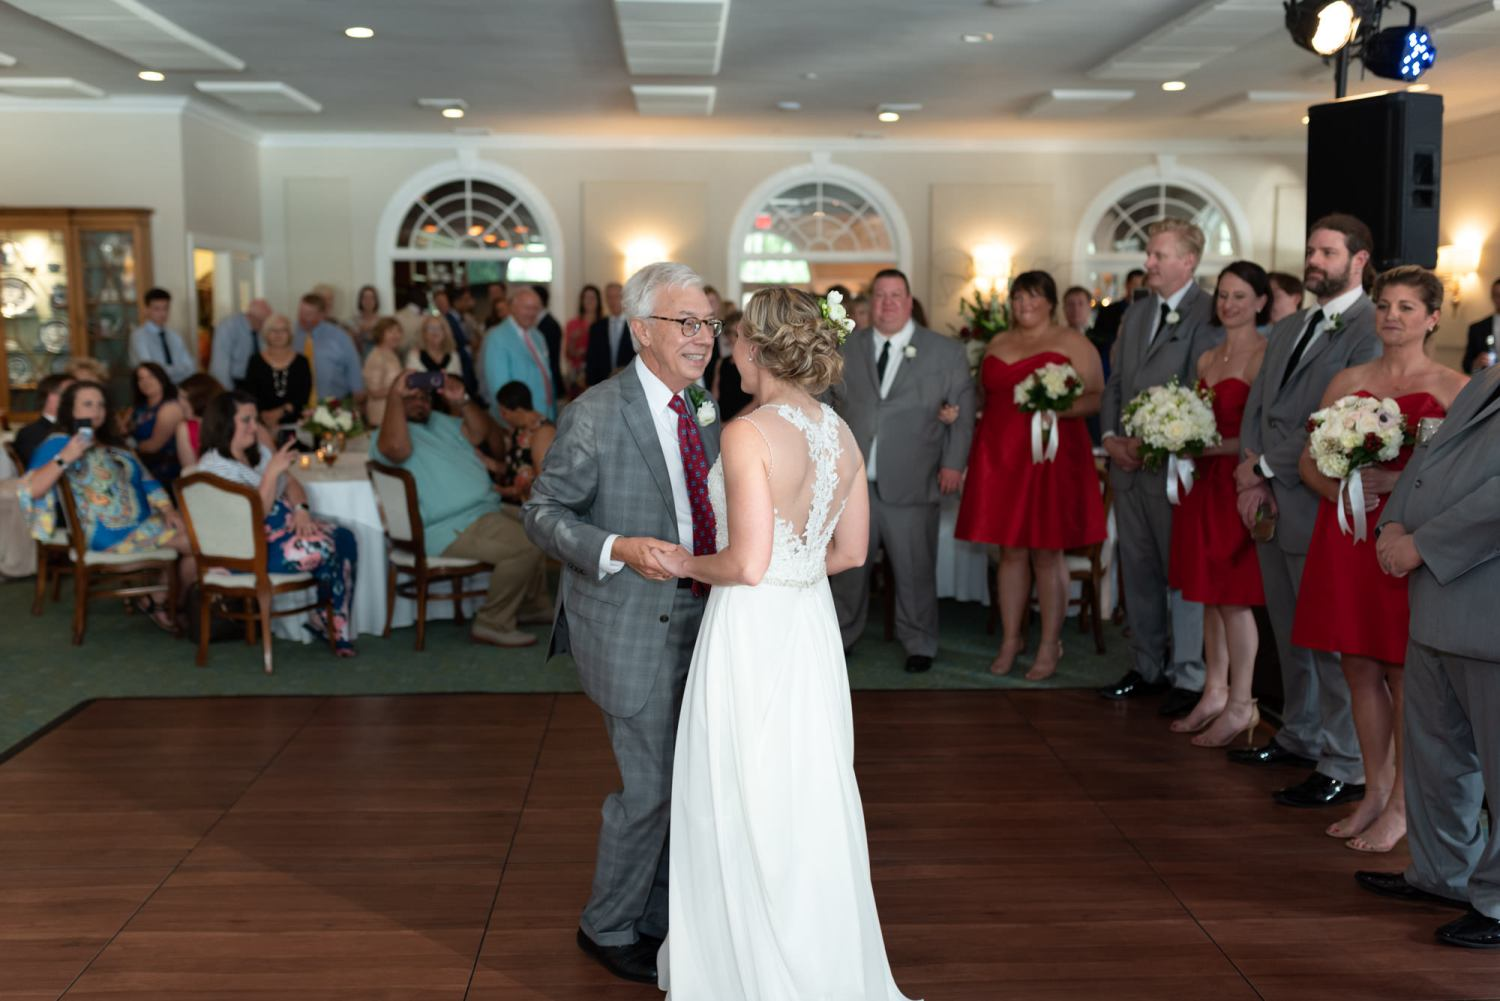 Bride dancing with her father - Wachesaw Plantation